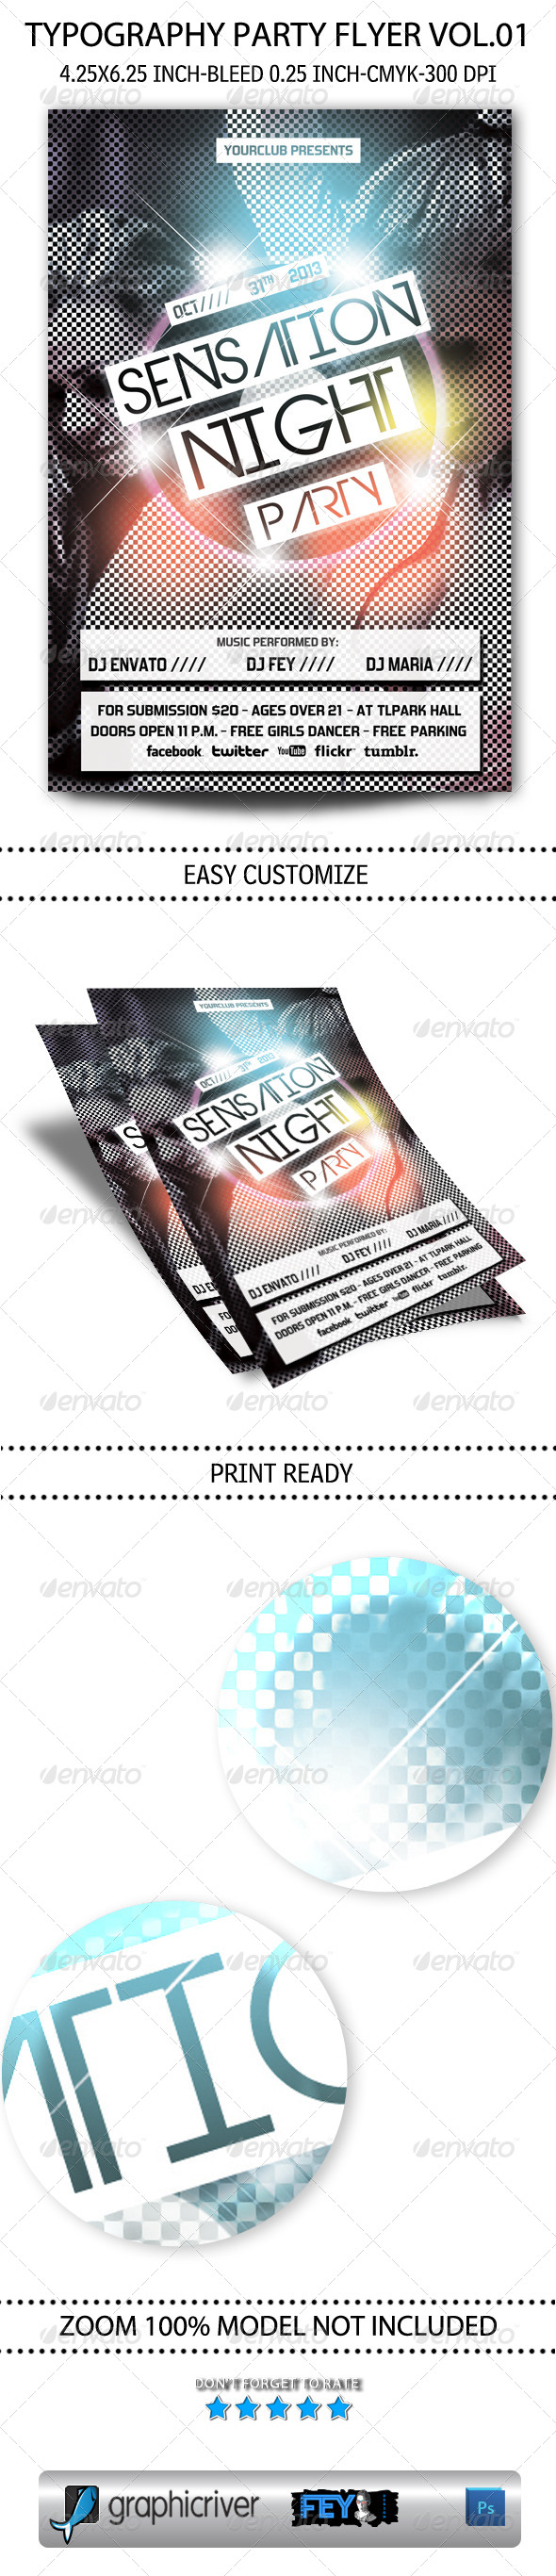 GraphicRiver Typography Party Flyer Vol.01 5759141